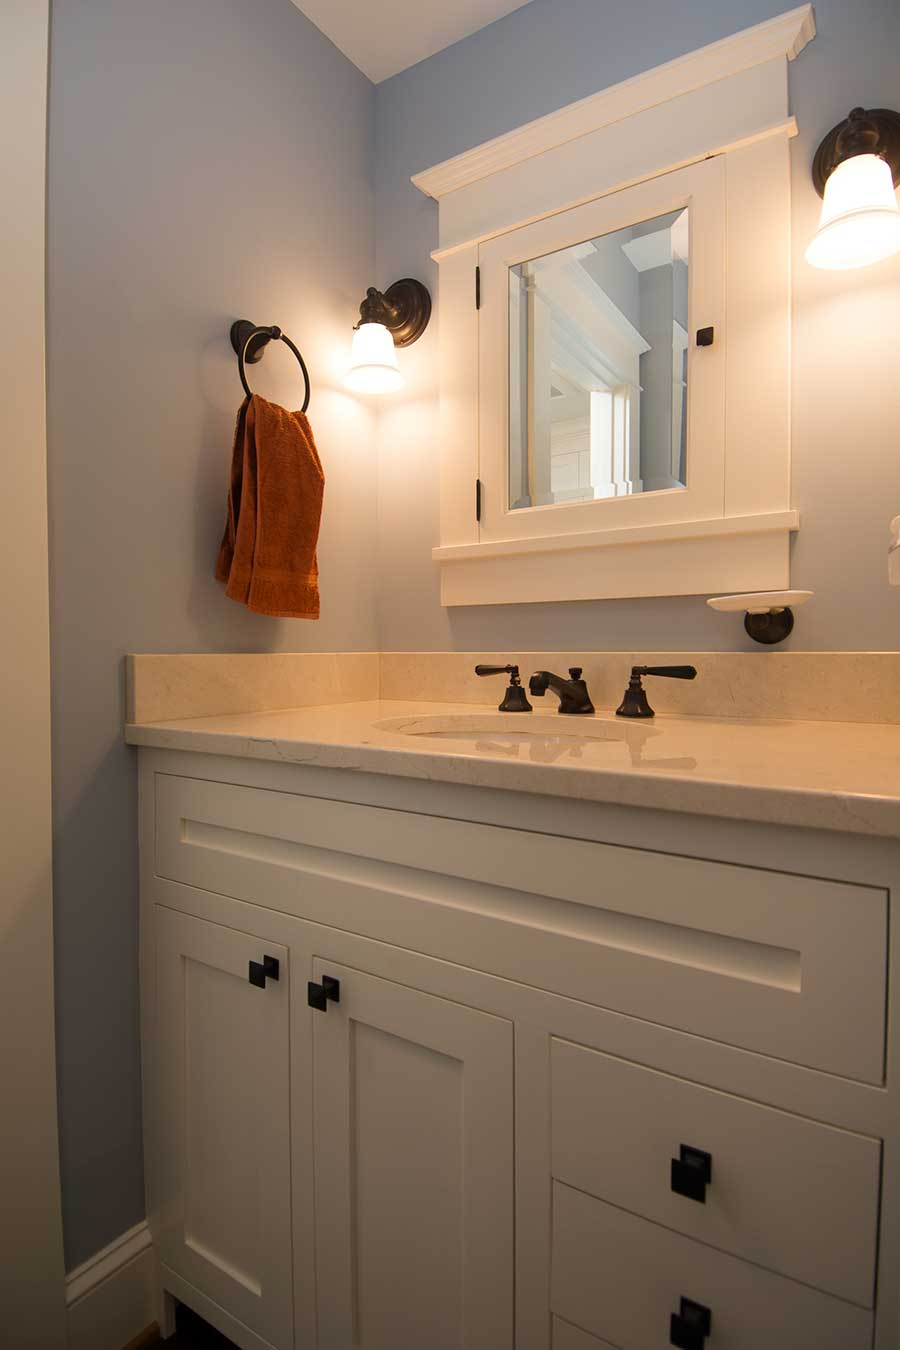 Custom Bathroom Vanities Portland Oregon custom built-in cabinets and woodworking projects